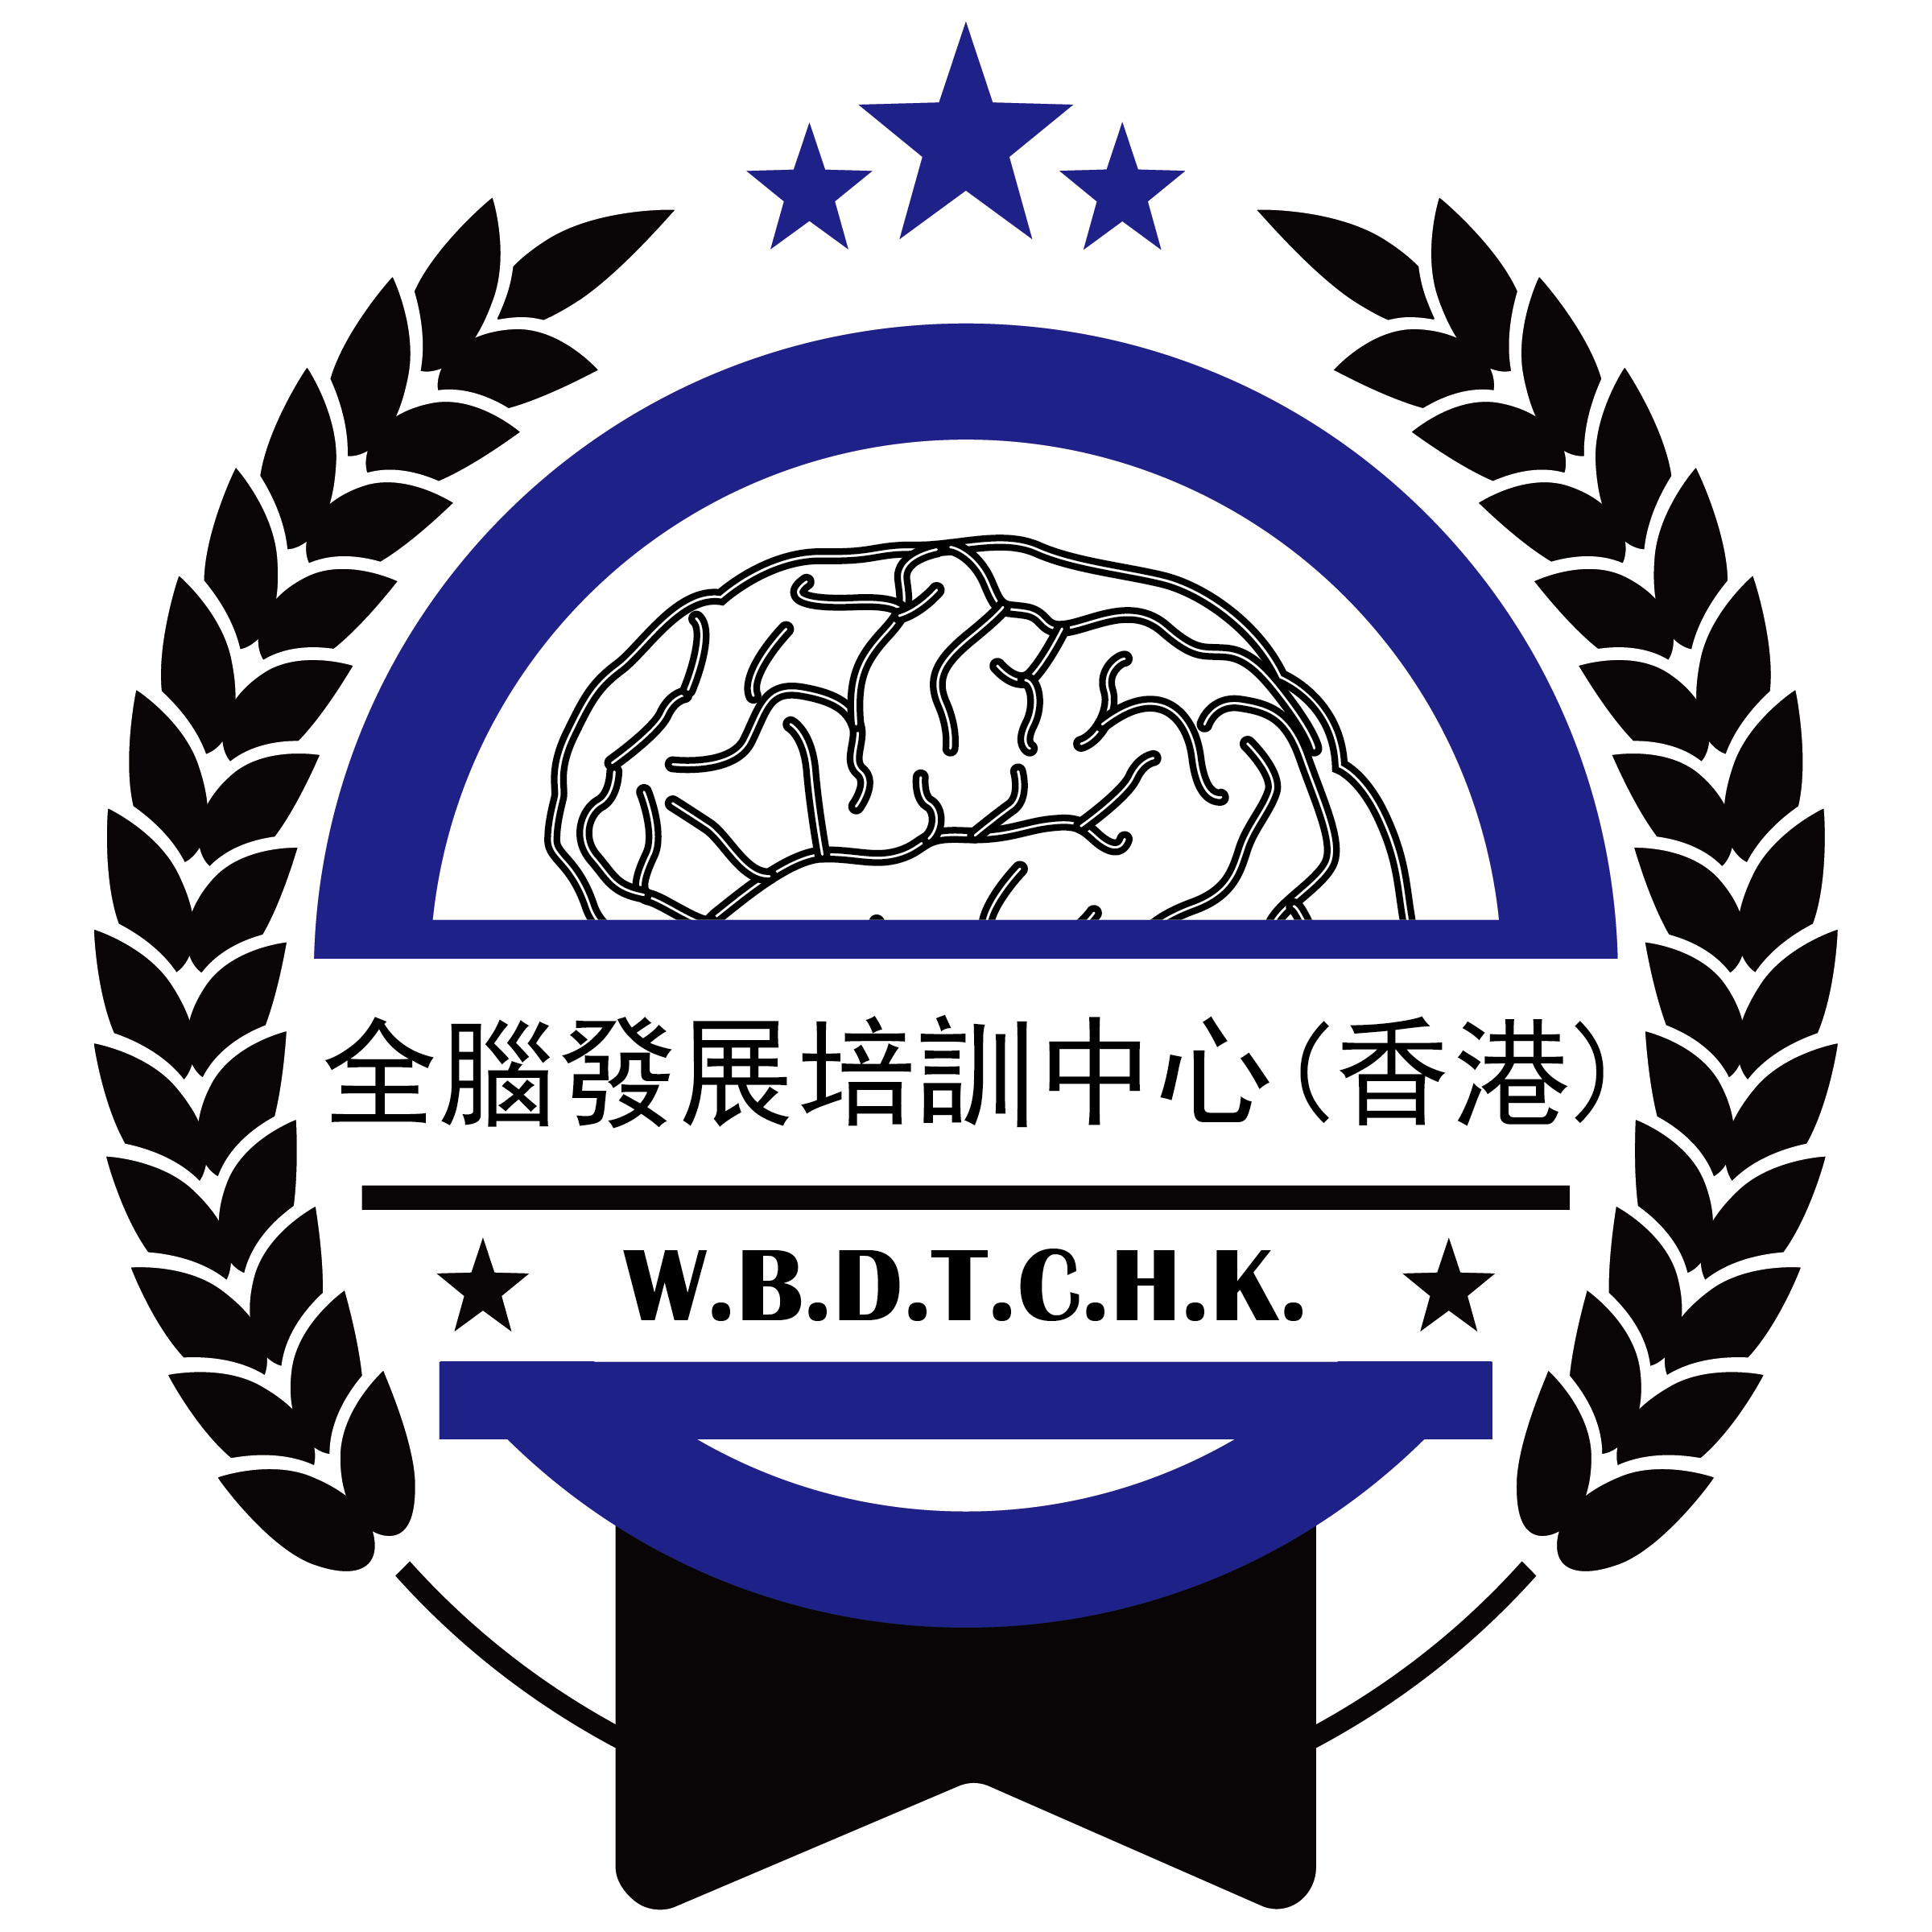 Whole Brain Development Training Centre (Hong Kong)